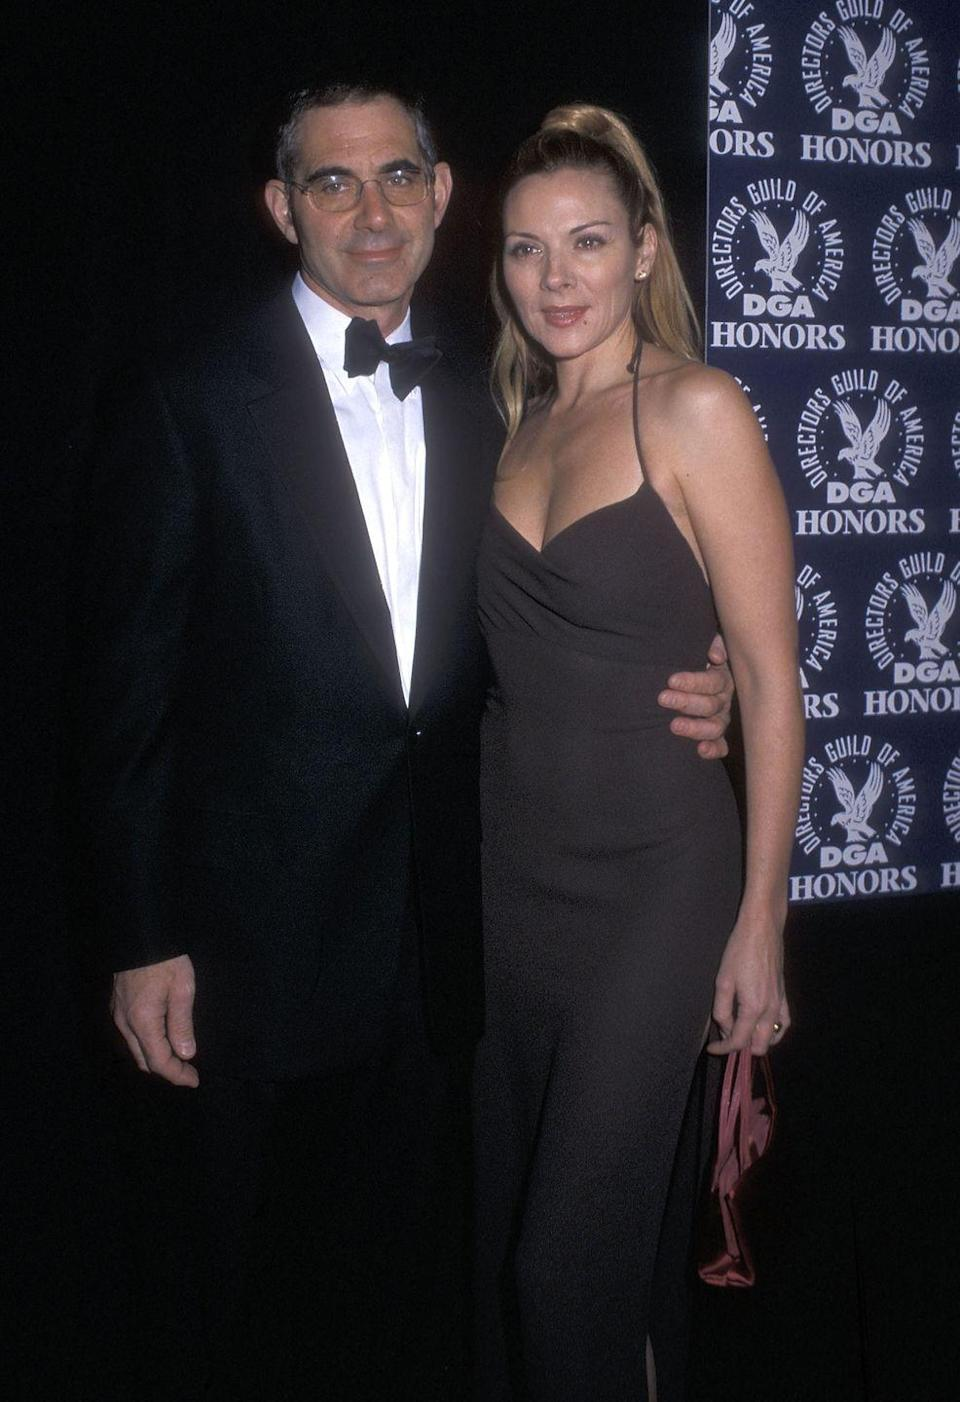 """<p>In 2002, Kim and her then-husband Mark cowrote a book about sex titled <em><a href=""""https://www.amazon.com/Satisfaction-Female-Orgasm-Kim-Cattrall/dp/0446530719/"""" rel=""""nofollow noopener"""" target=""""_blank"""" data-ylk=""""slk:Satisfaction: The Art of the Female Orgasm"""" class=""""link rapid-noclick-resp"""">Satisfaction: The Art of the Female Orgasm</a></em>. Despite their shared passion project, the actress and the audio designer/jazz bassist ended their six-year marriage in 2004, partially because of Kim's demanding <em>Sex and the City</em> work schedule. """"It cost me my marriage, because I was never home,"""" she told <a href=""""https://www.news.com.au/lifestyle/relationships/marriage/kim-cattrall-opens-up-about-how-satc-took-over-her-real-life-family/news-story/b386bb7556125ff38d861428a11a4acb"""" rel=""""nofollow noopener"""" target=""""_blank"""" data-ylk=""""slk:News.com.au"""" class=""""link rapid-noclick-resp"""">News.com.au</a> of the show. """"I was never there, and my husband got lonely and upset and competitive, and it was really difficult, it was really hard.""""</p>"""